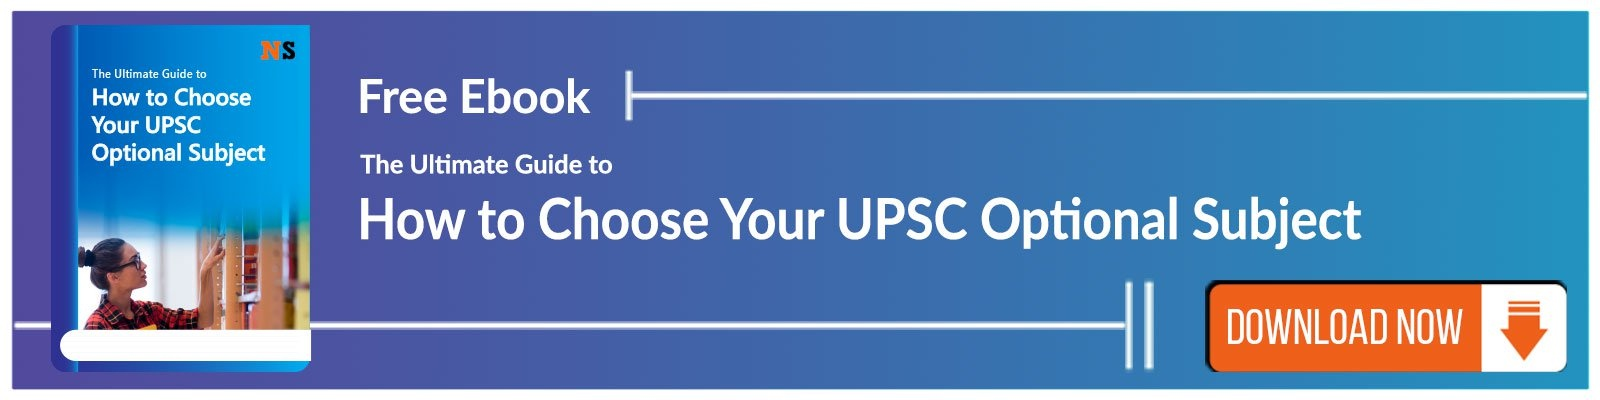 How-to-choose-UPSC-Optional-Subject